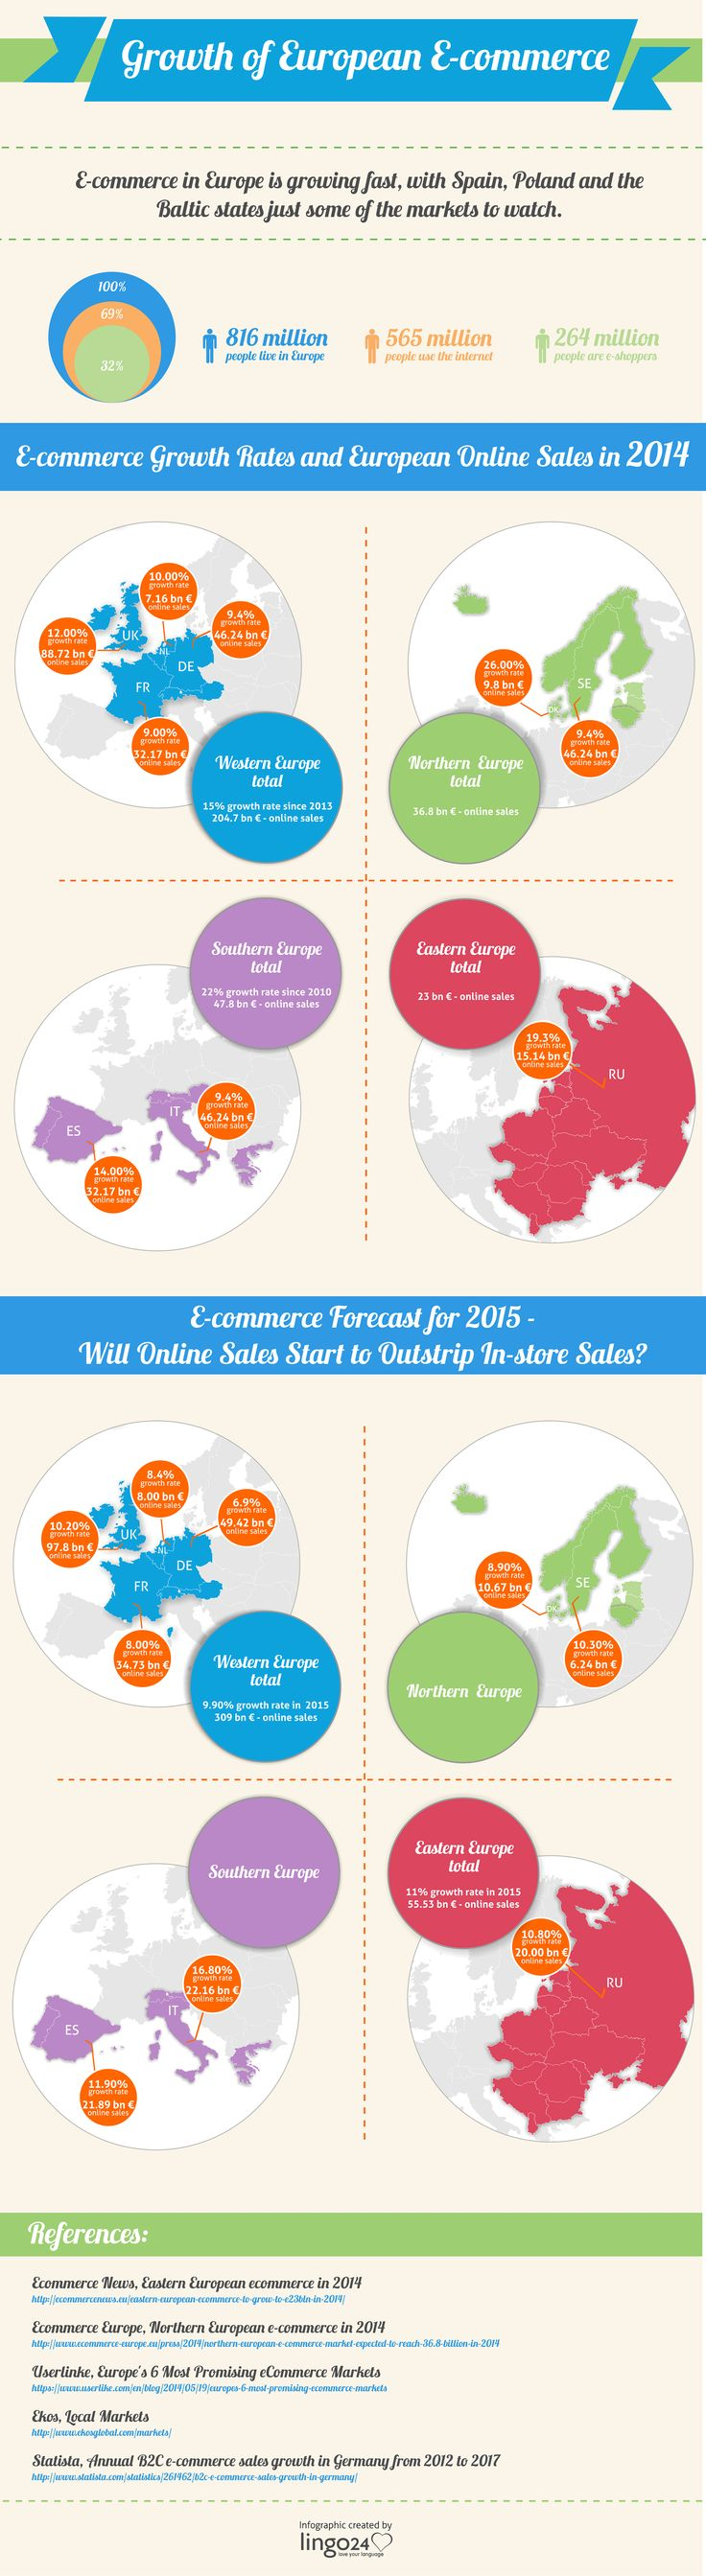 Online consumer sales have been growing rapidly in Europe during recent years, as internet usage and access to computers and mobile devices become more widespread. This #infographic shows which European countries are adopting e-commerce en masse, and which markets might be hot for growth in online sales this year.